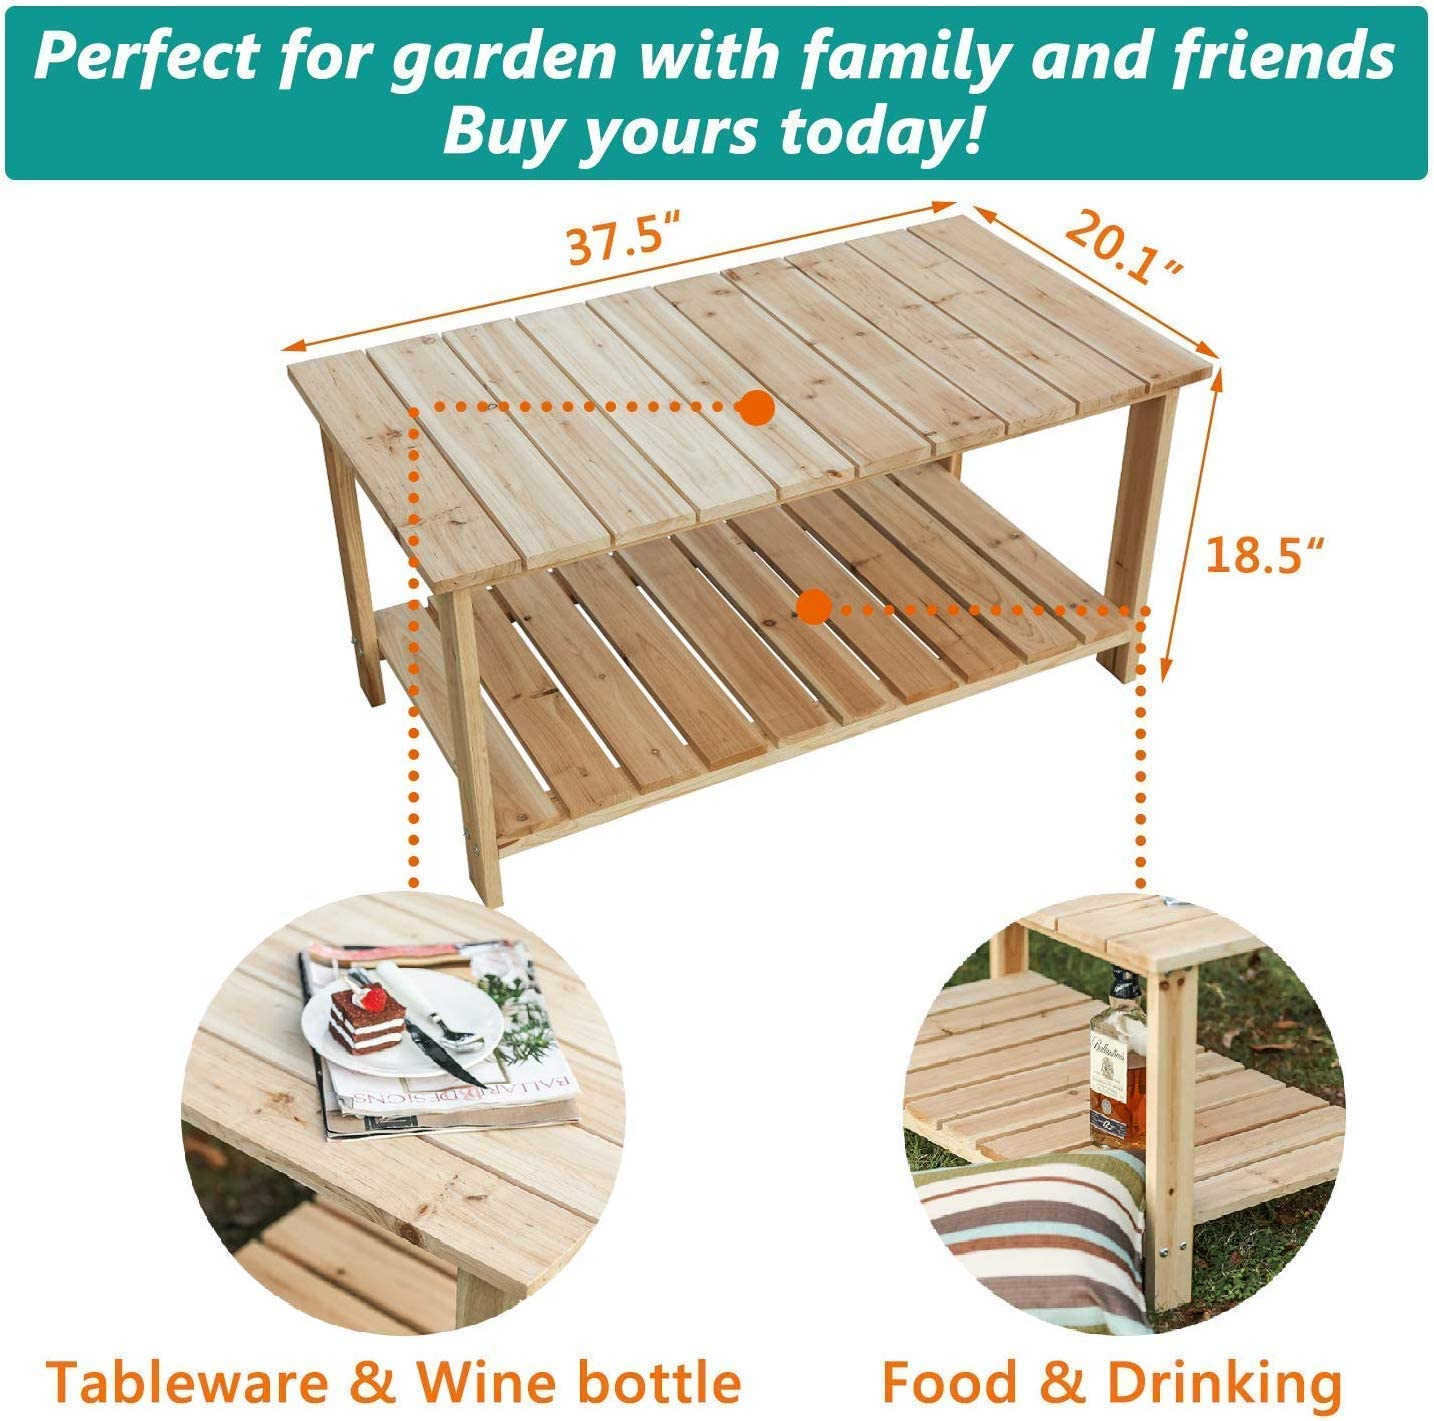 LOKATSE HOME Outdoor Coffee Table Natural Wood Patio Furniture with 2-Shelf Storage Organizer, Adirondack